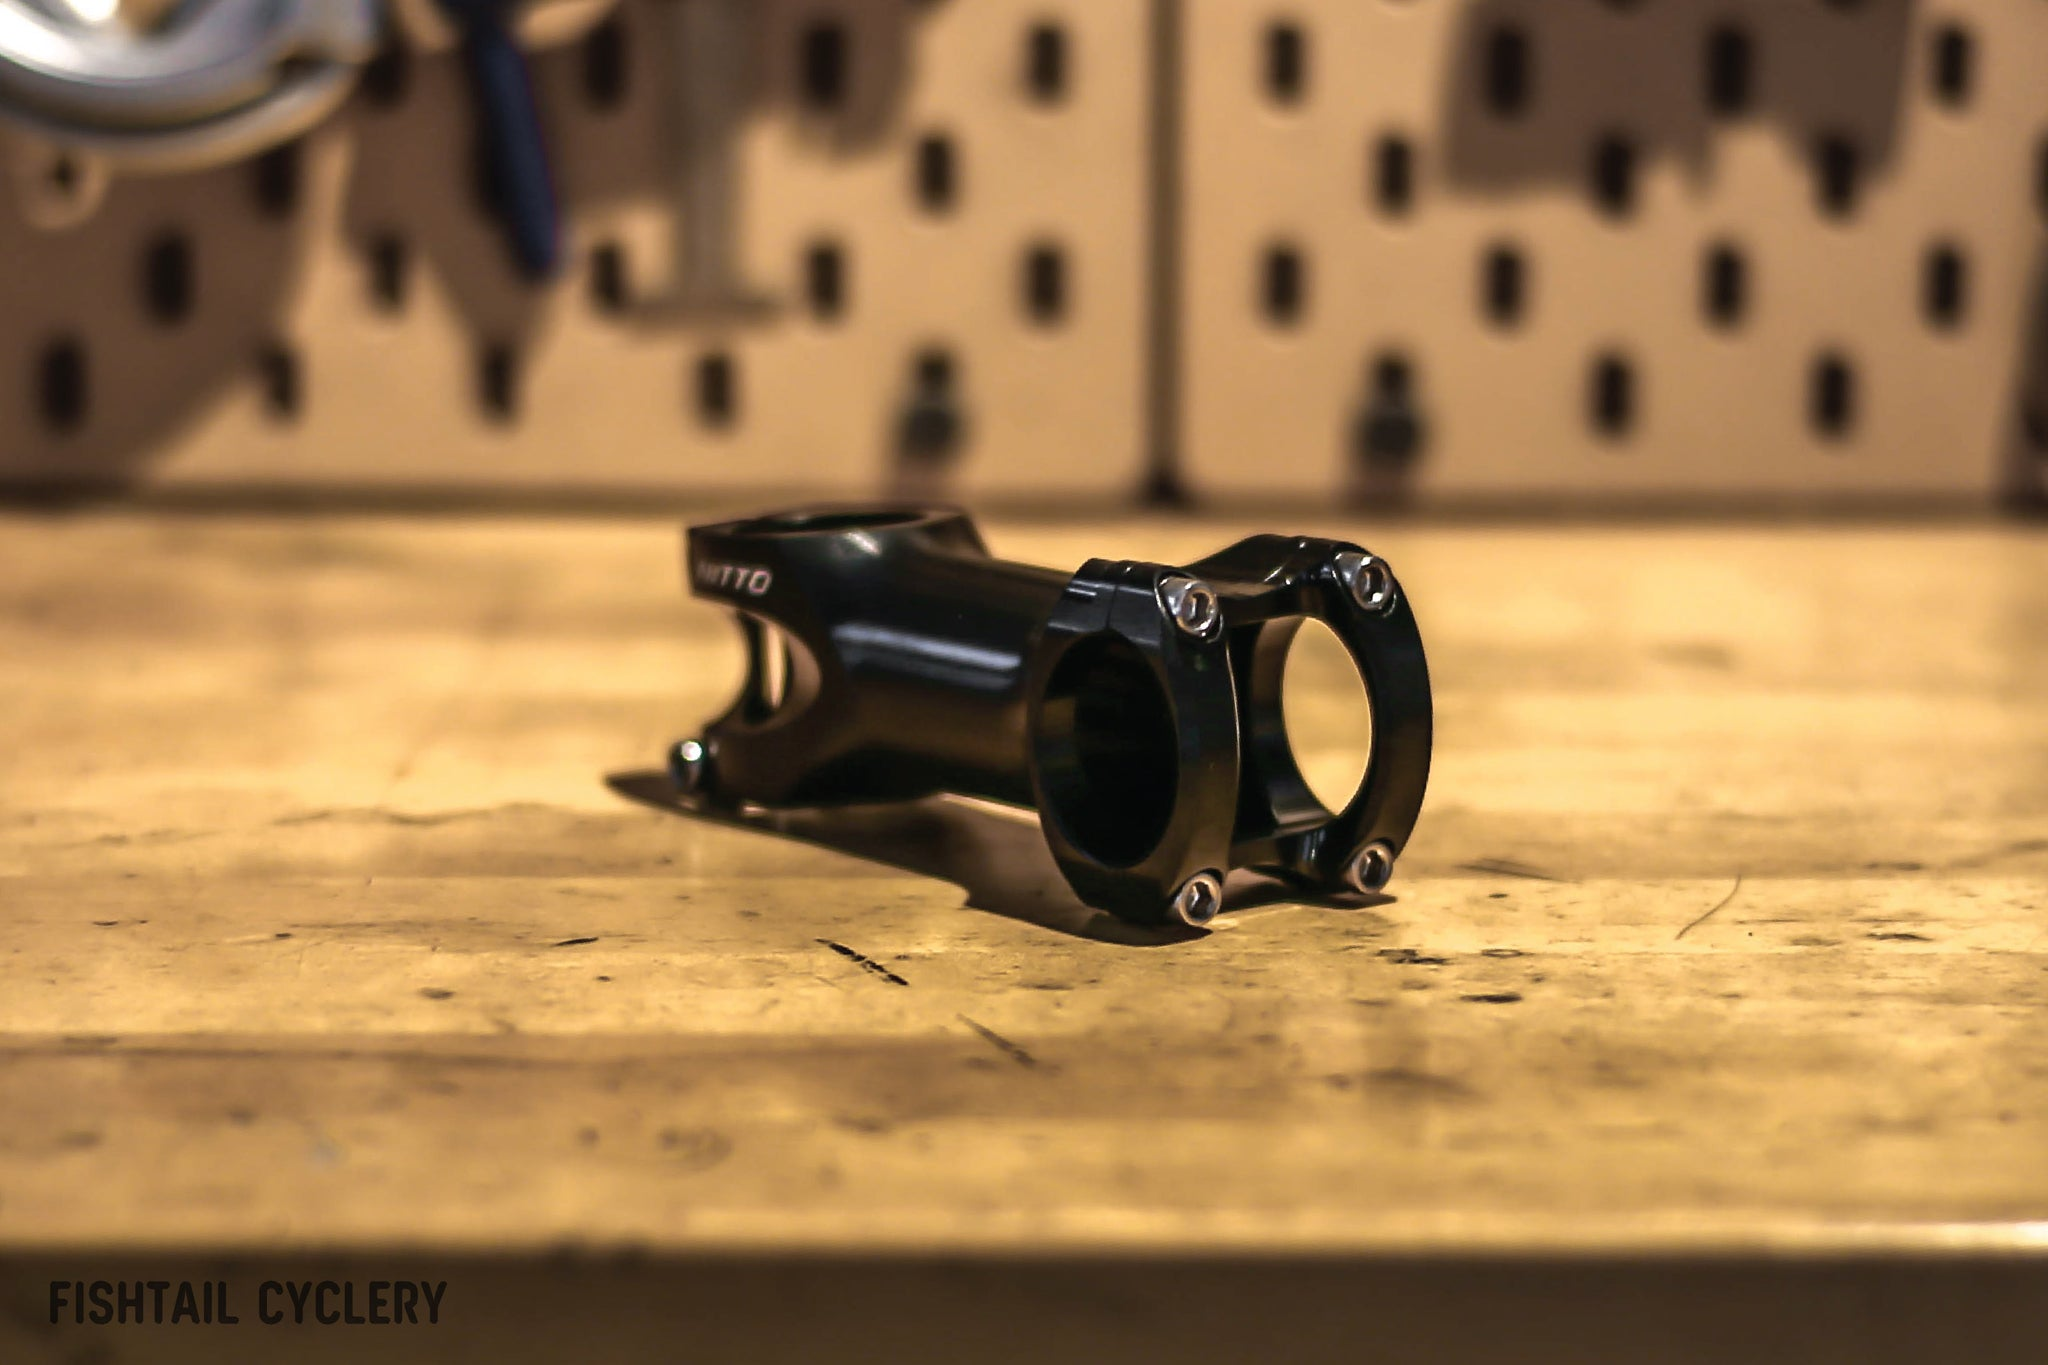 NITTO UI-25 Handlebar Stem - FISHTAIL CYCLERY